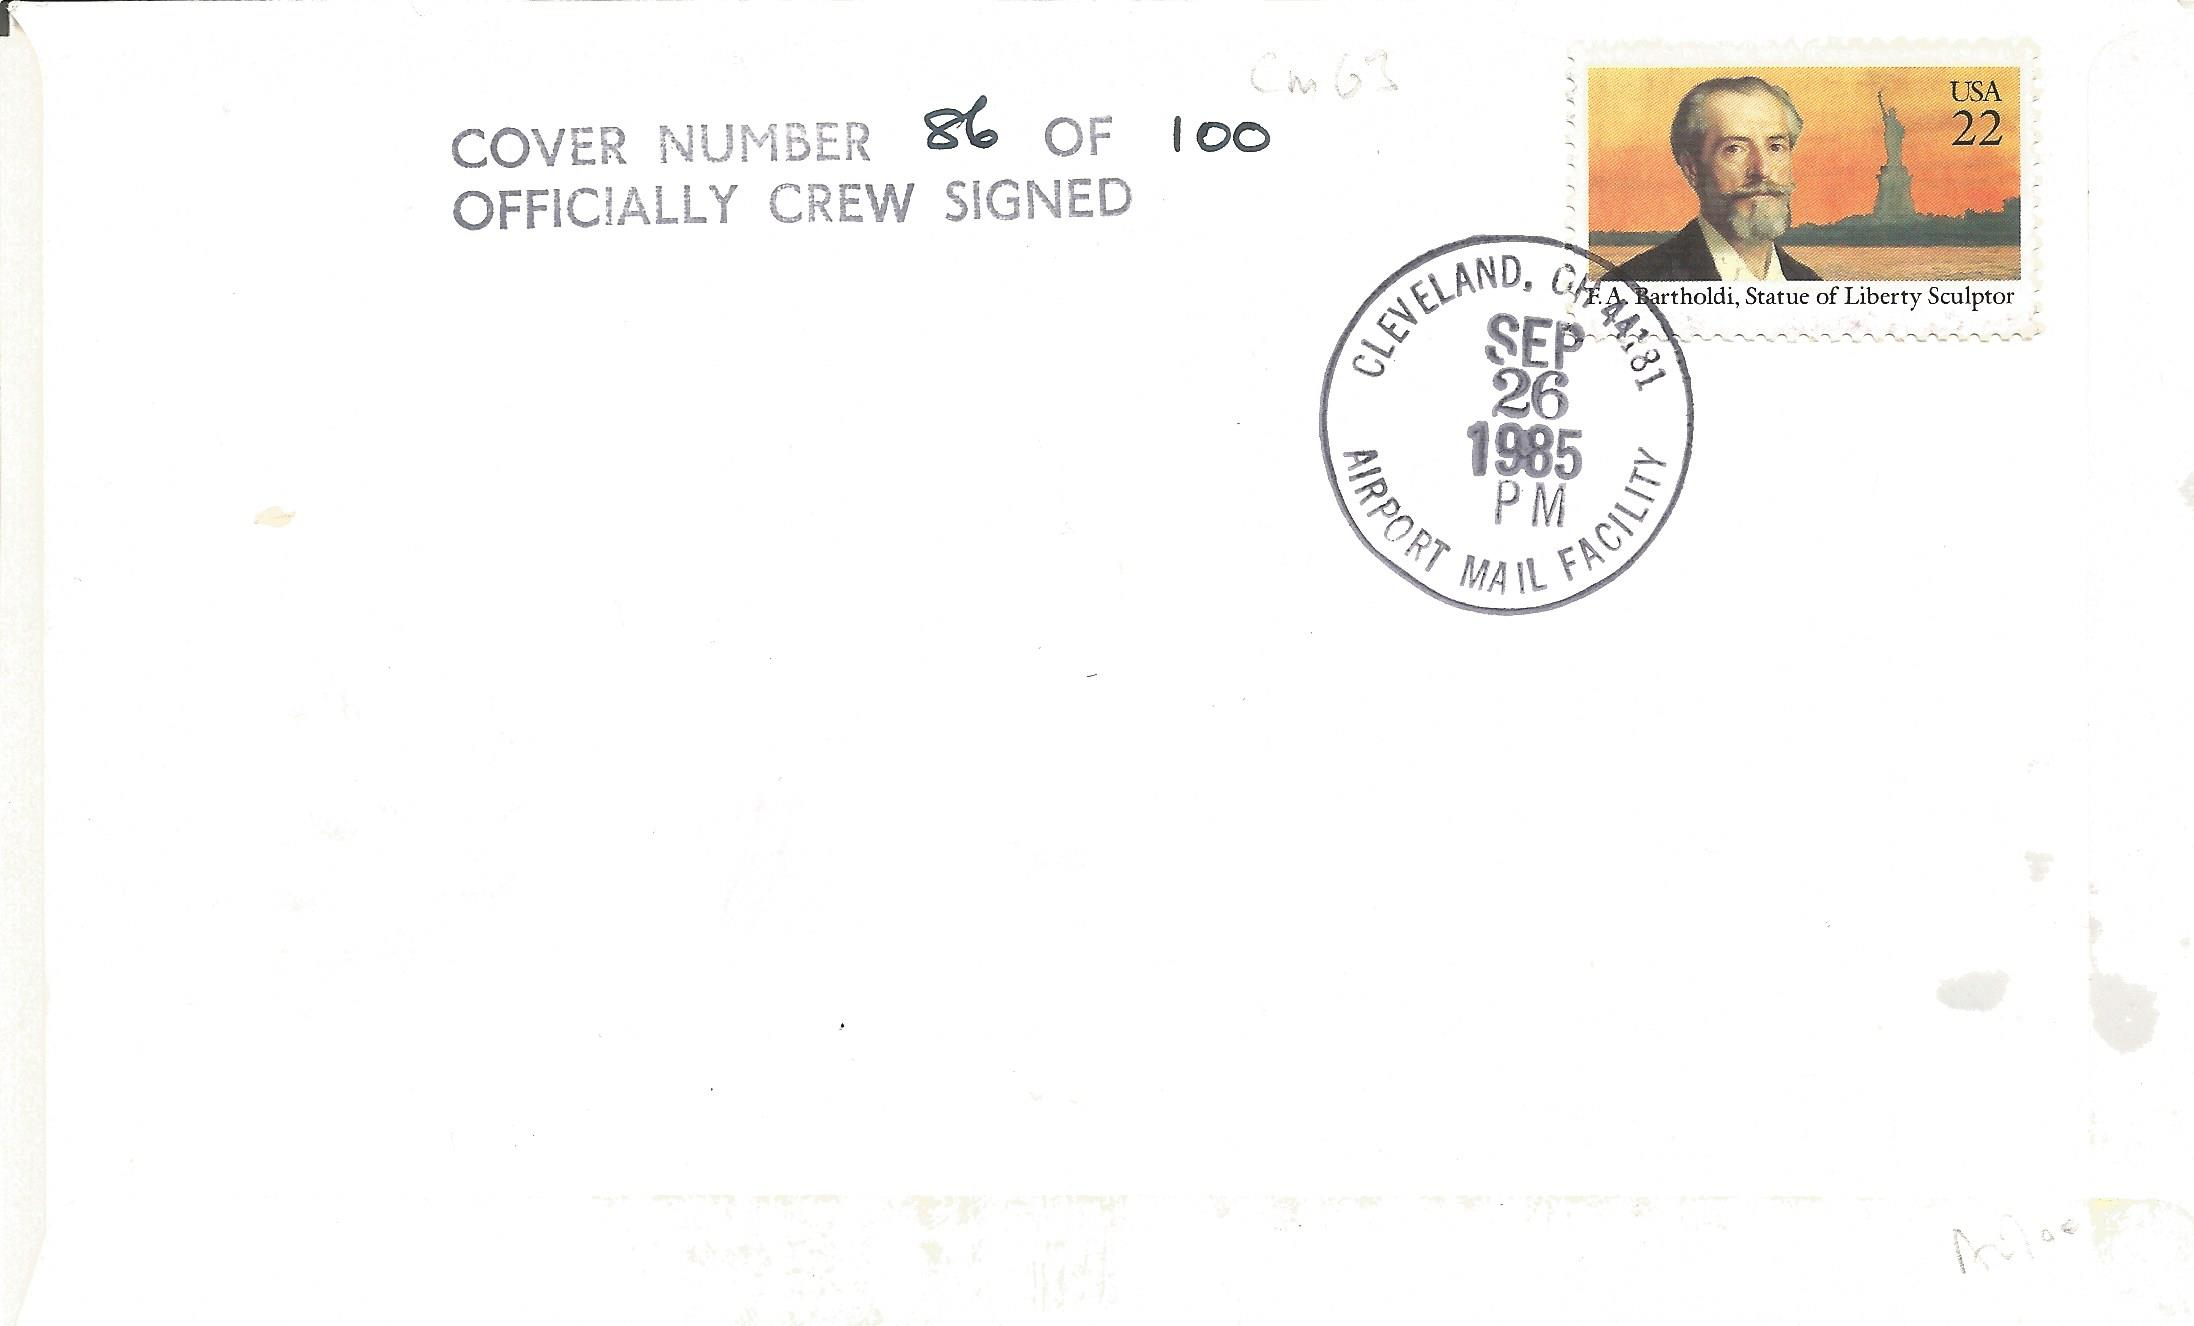 Rare Official British Airways' Concorde 1st Flight- London- Cleveland Flown Cover Signed by Three - Image 2 of 2